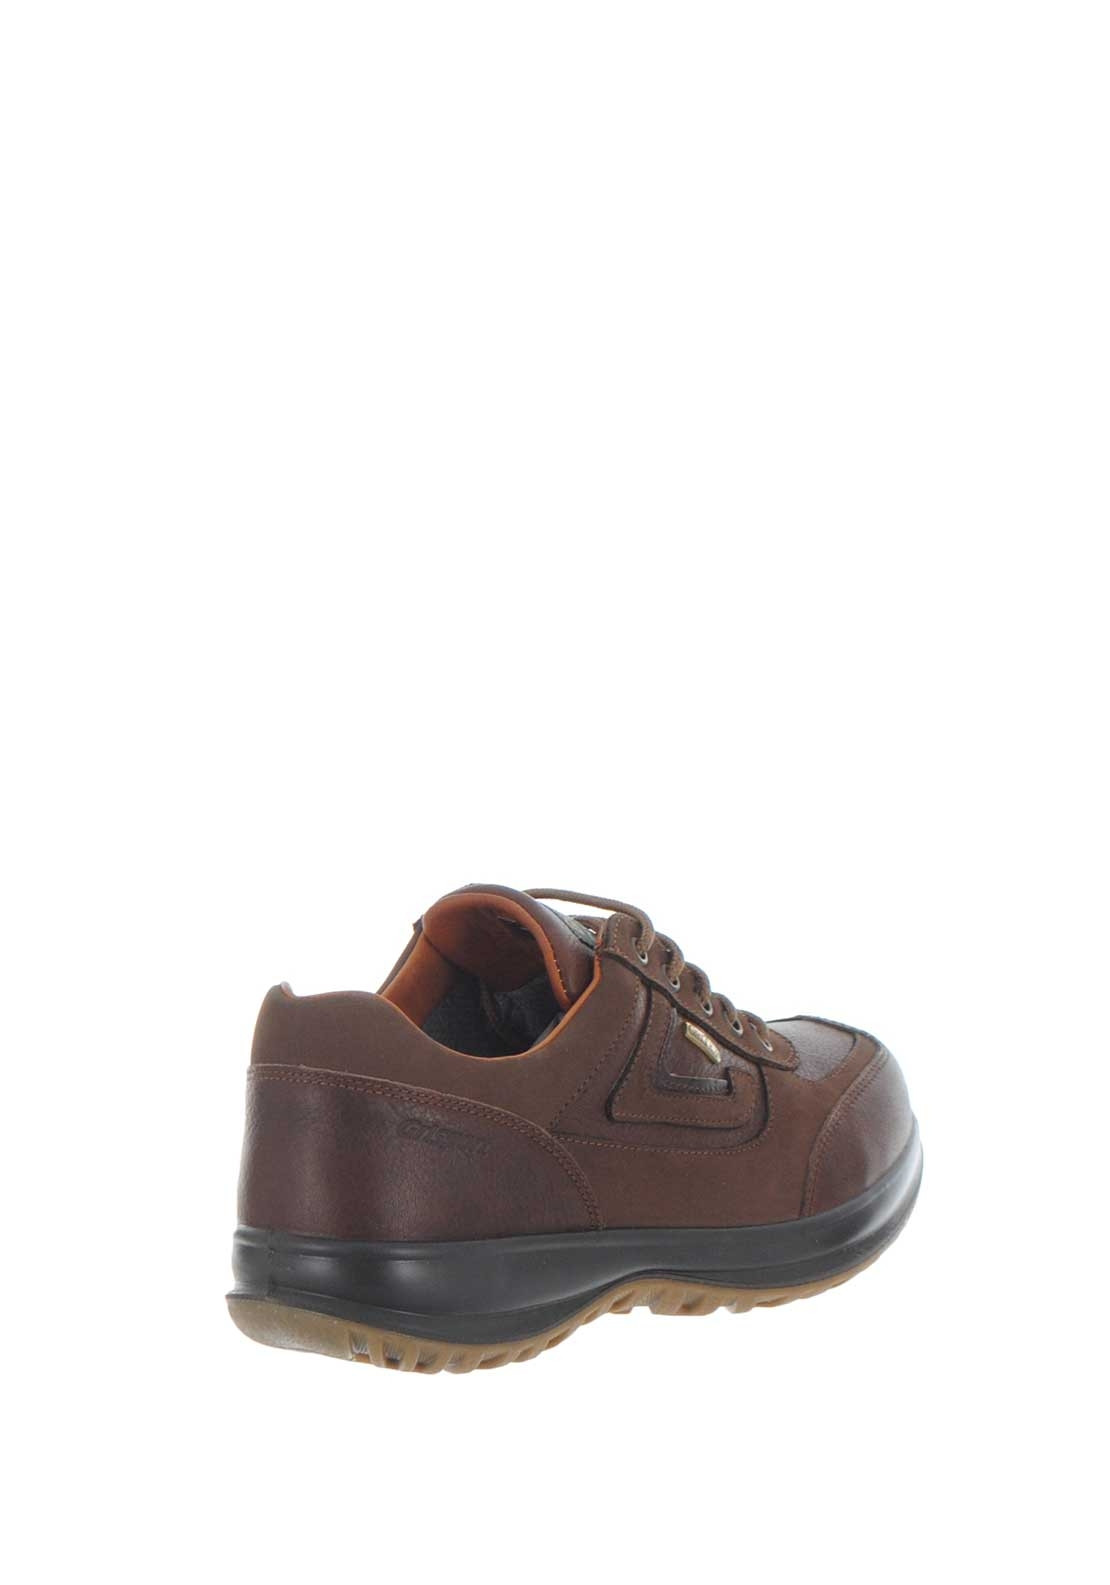 855748aeadd Grisport Air walker Gritex Leather Shoe, Tan